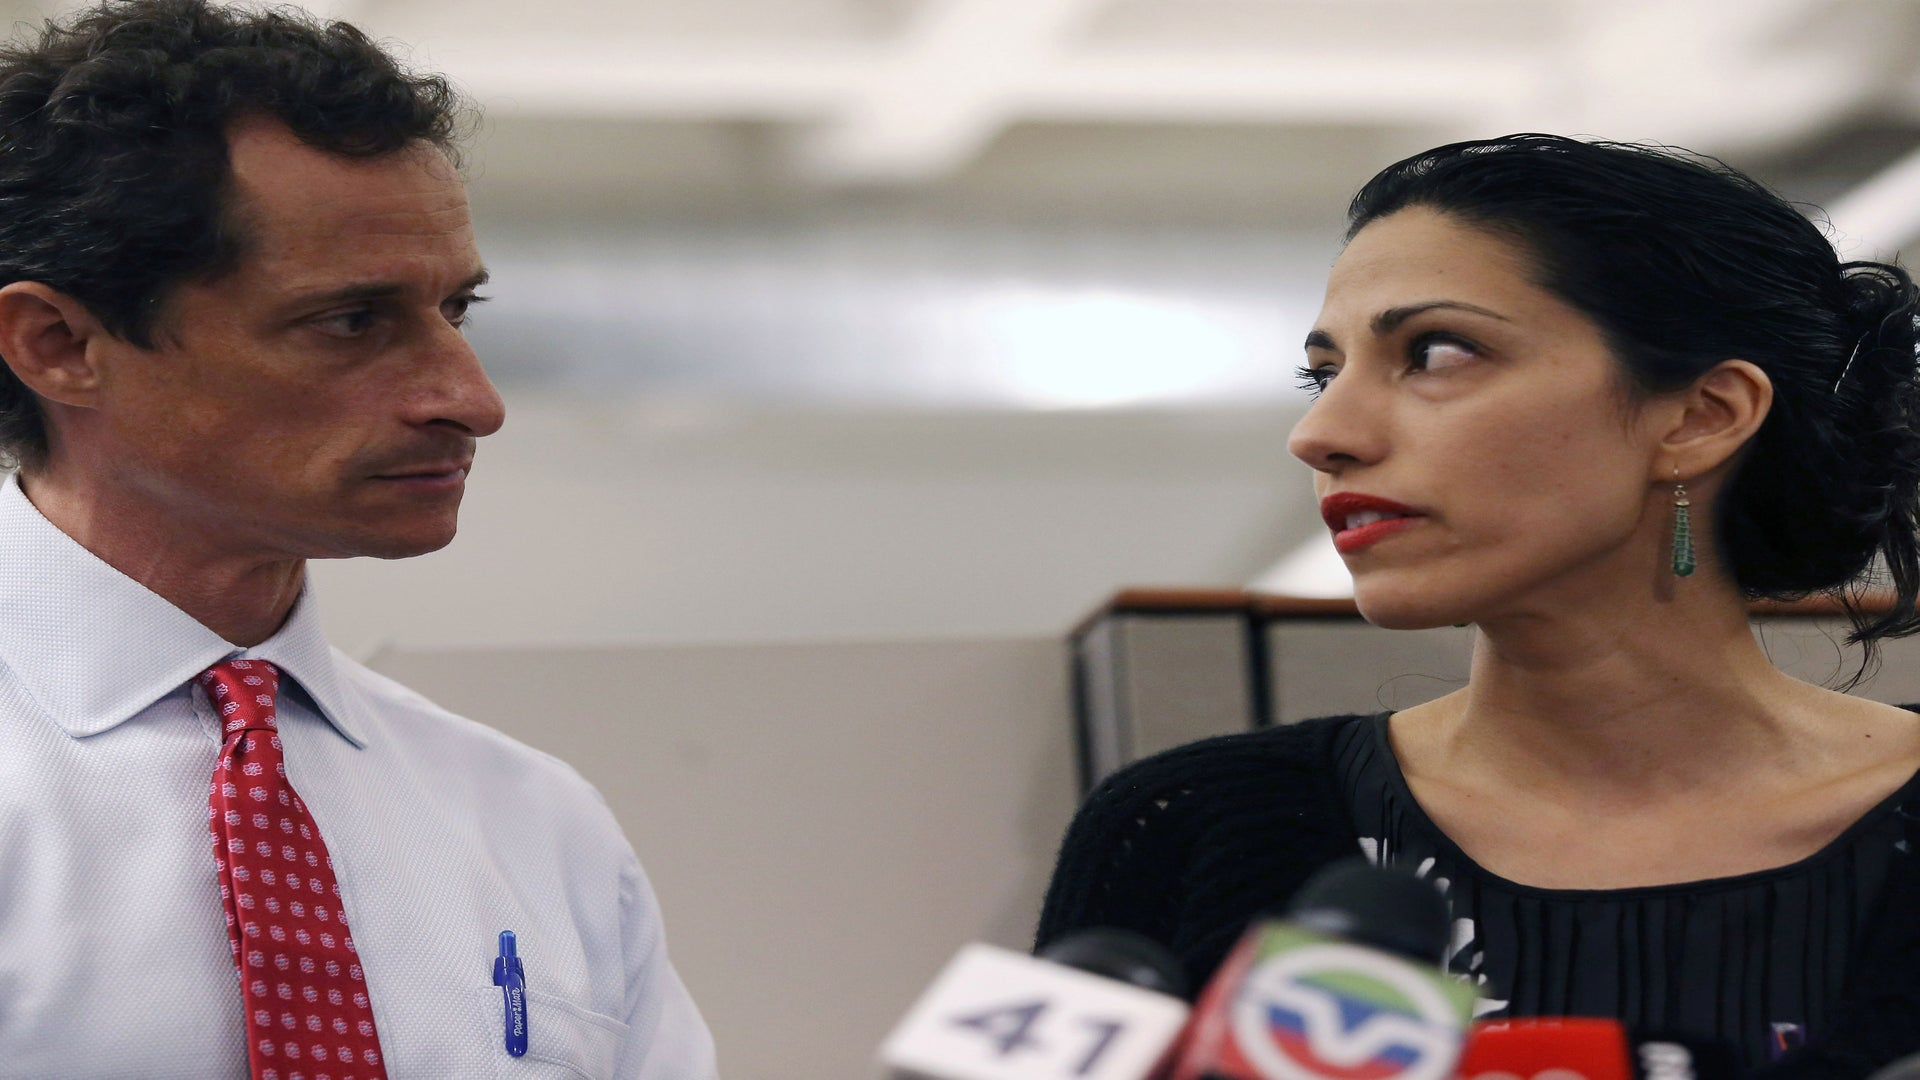 """A """"Furious and Sickened"""" Huma Abedin Announces Separation From Anthony Weiner Amid Sexting Scandal"""